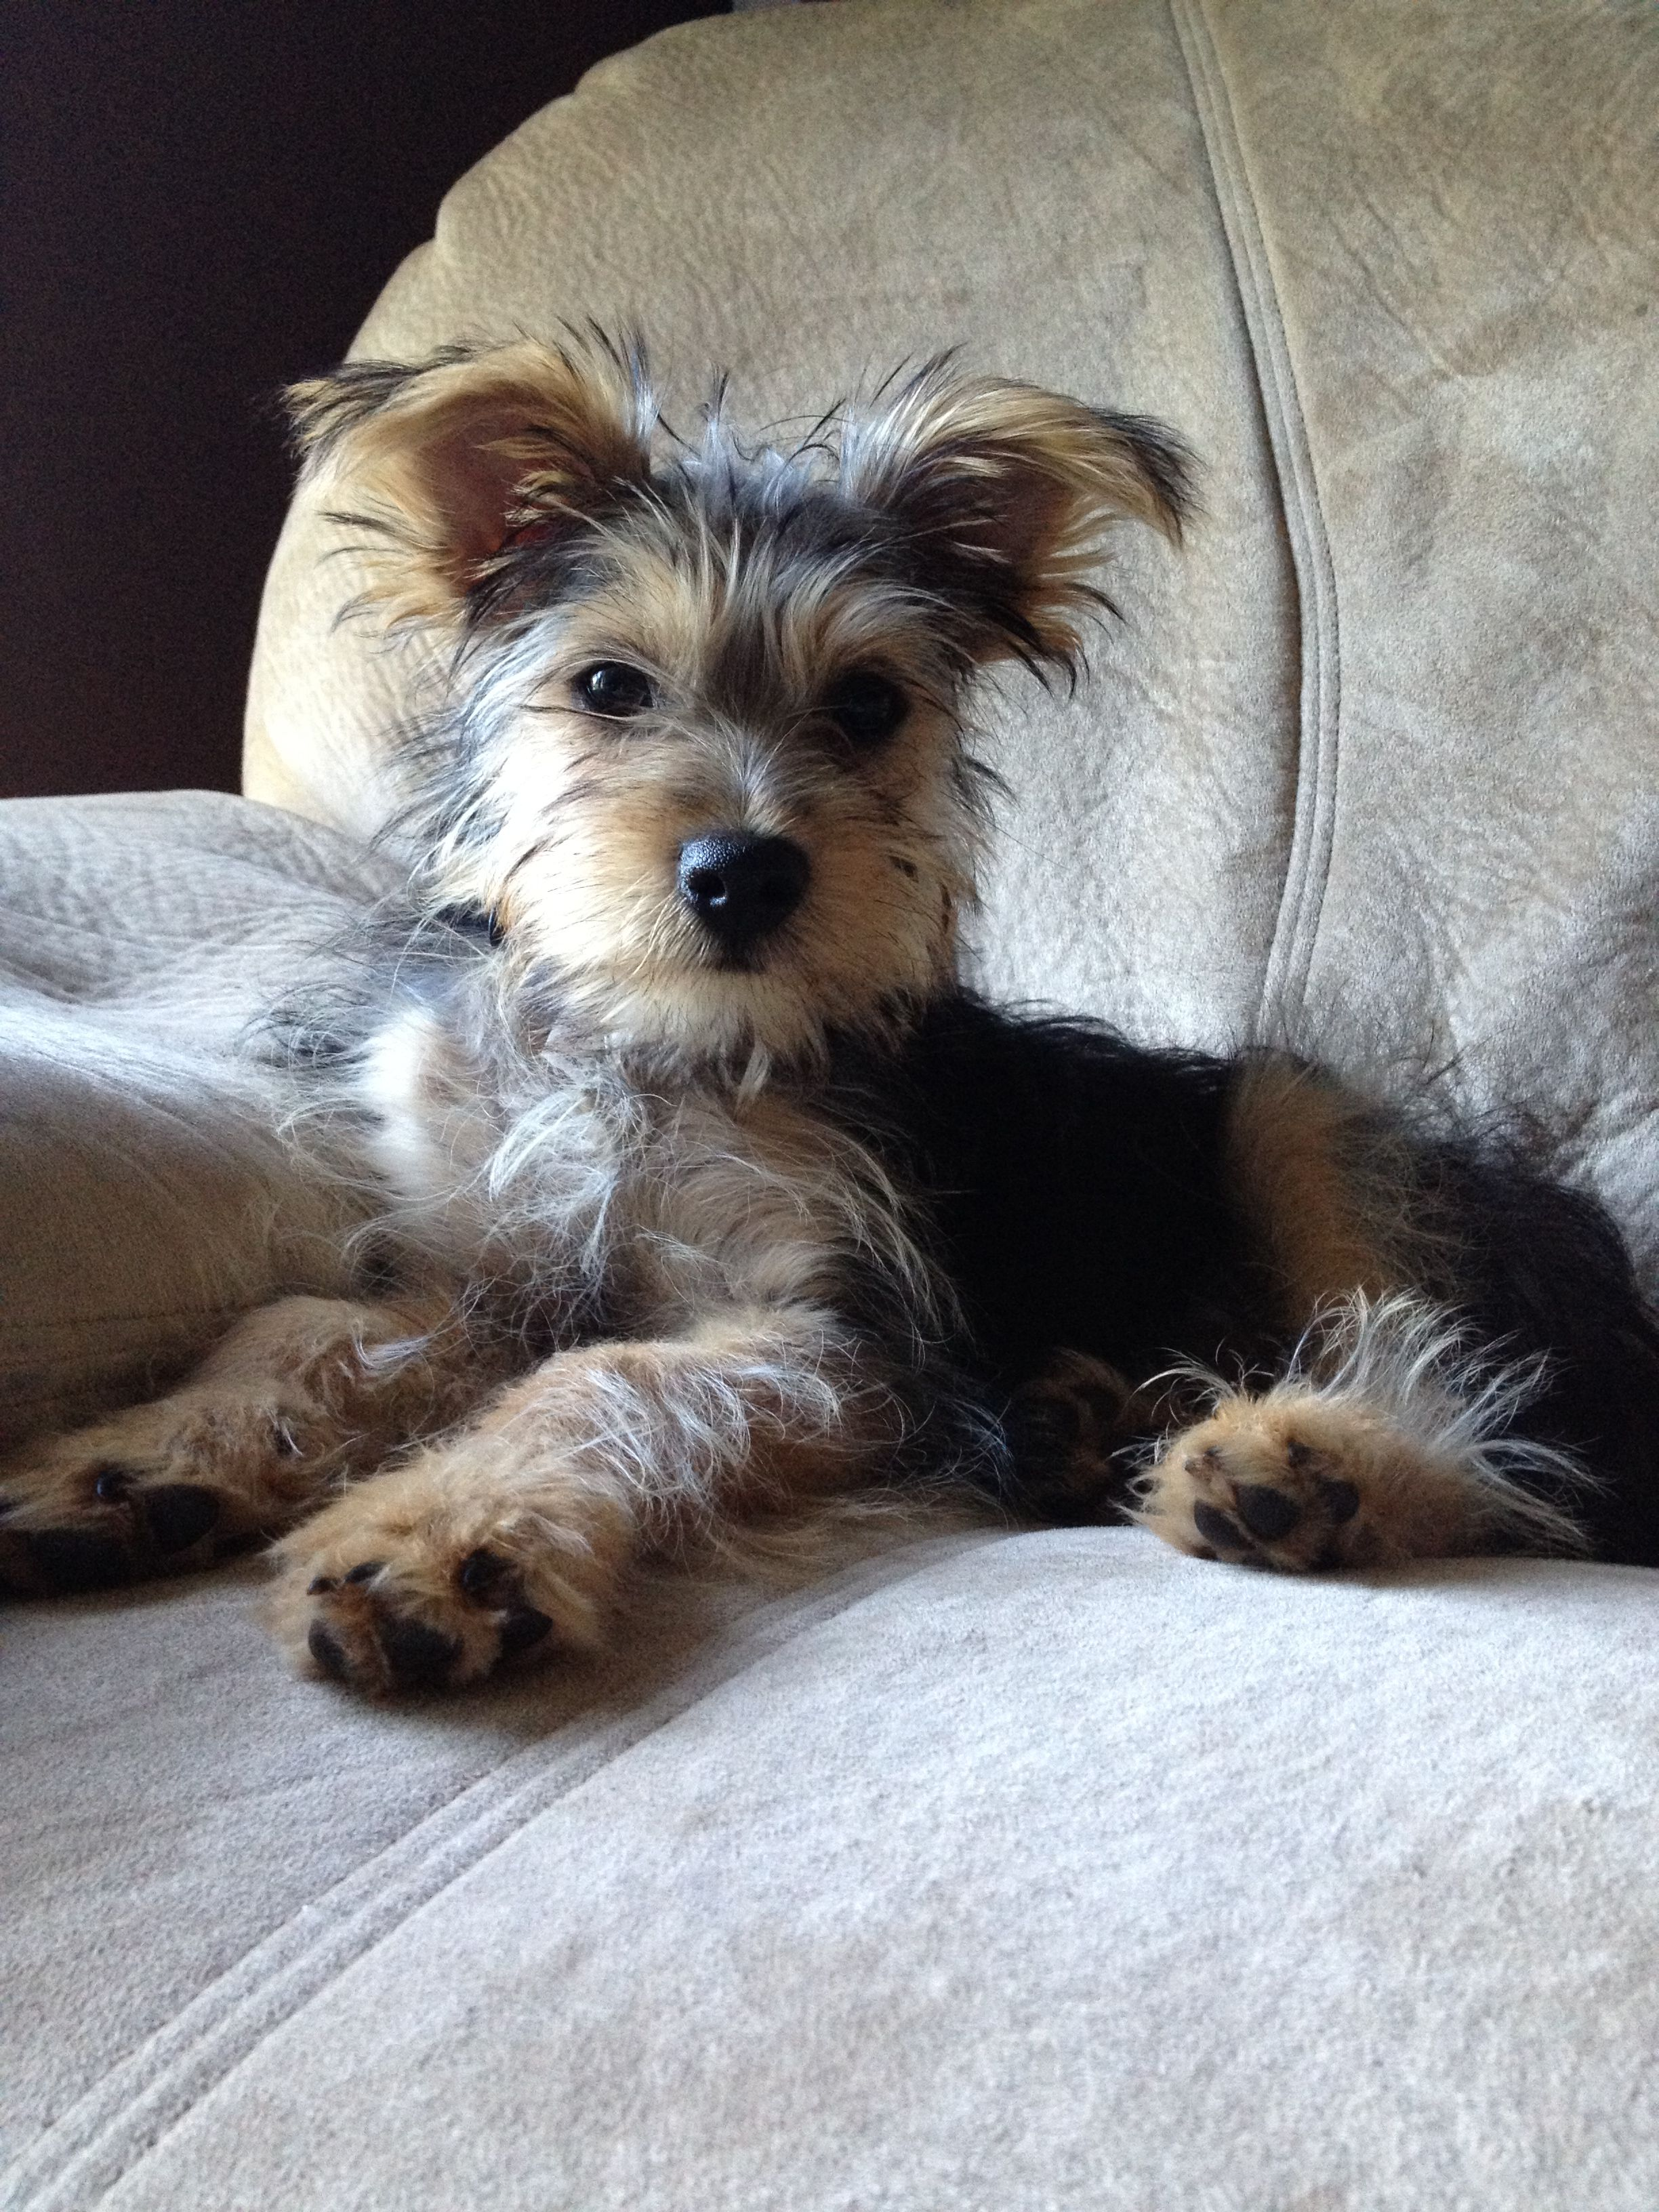 Snorkie yorkie and schnauzer mix! I will have one someday